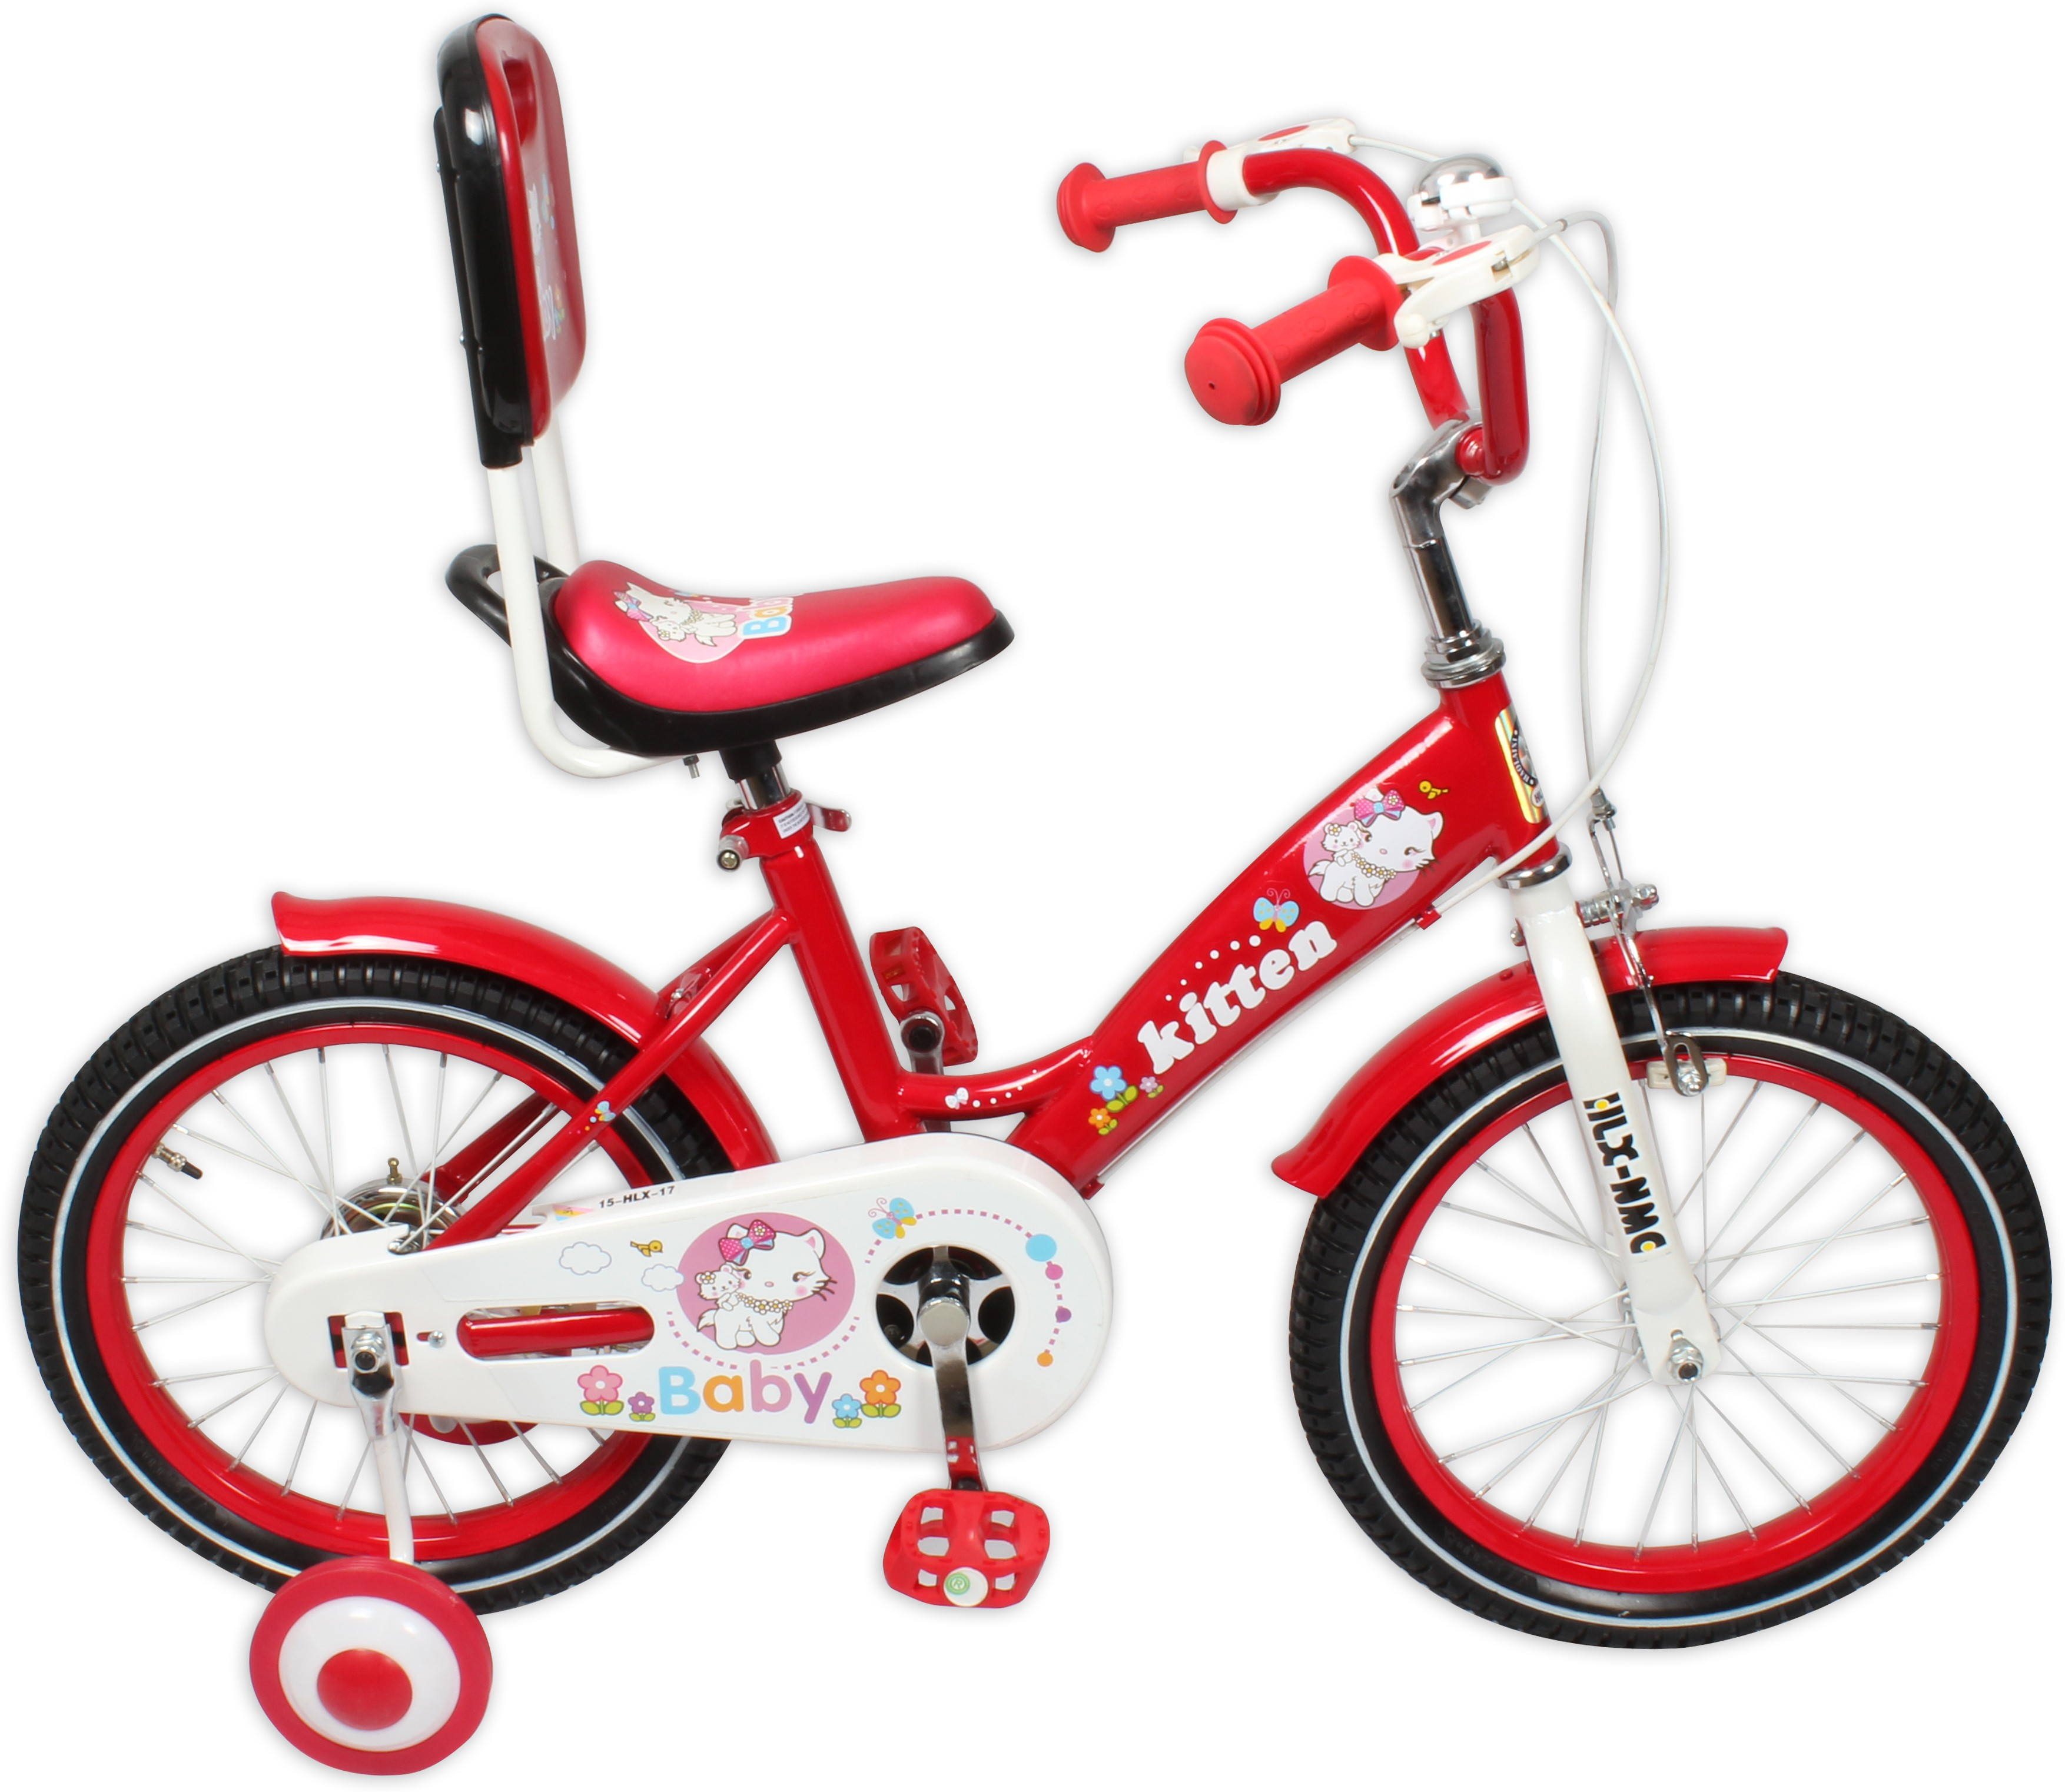 9be4c53eec8 HLX-NMC KIDS BICYCLE 16 KITTEN RED 16KITTENRD Recreation Cycle